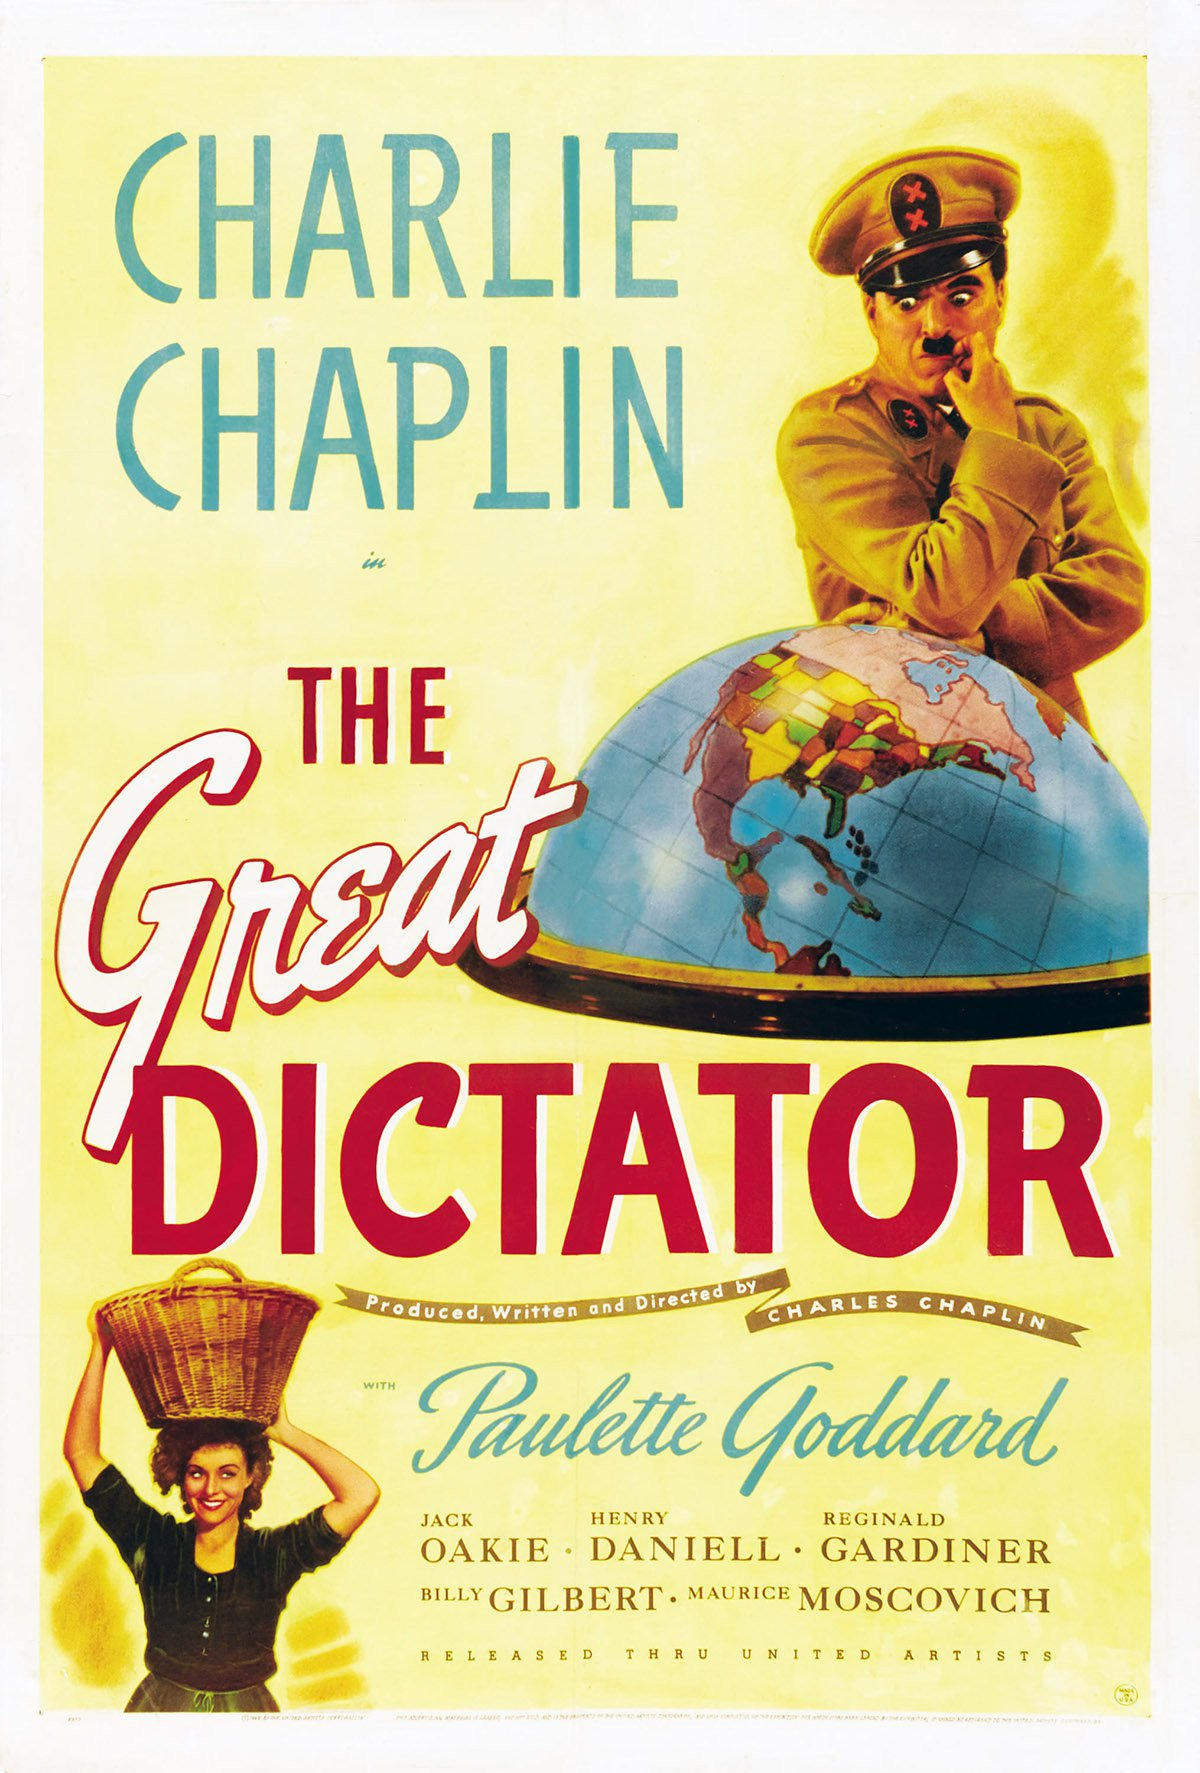 the great dictator movie download 480p